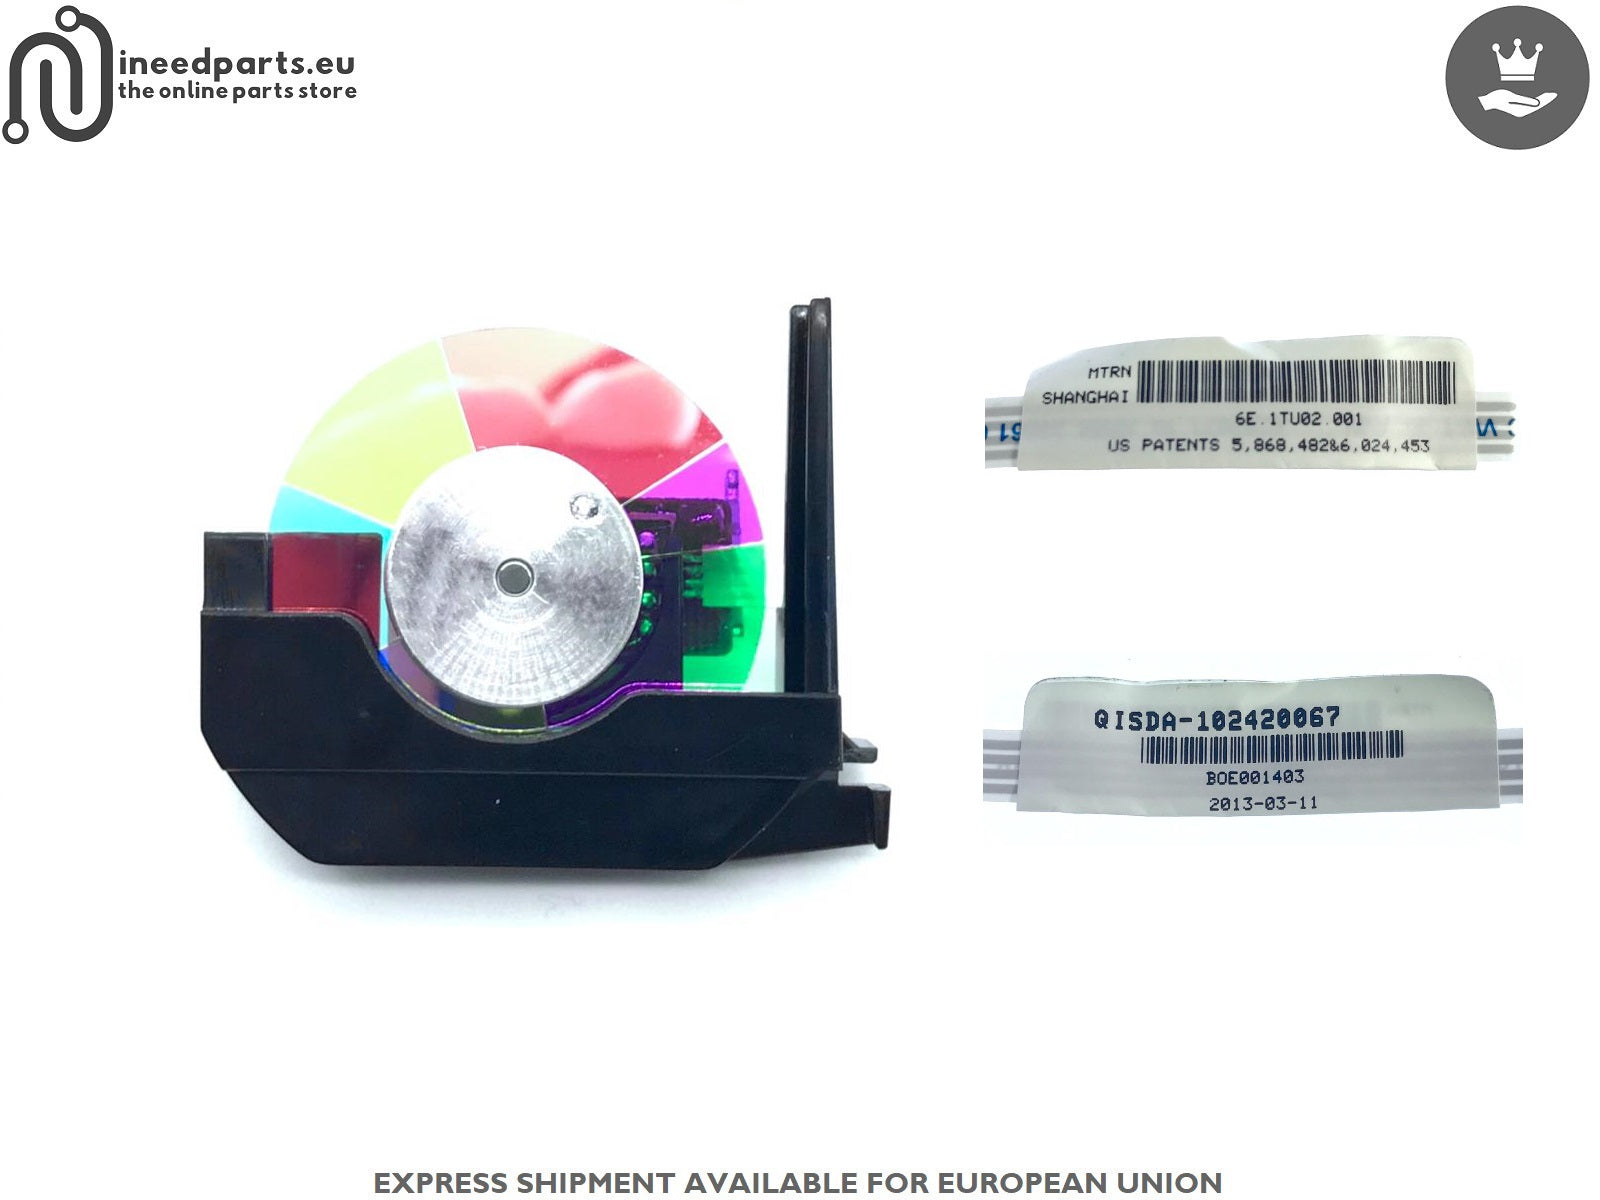 Color Wheel BOE001403 6E.1TU02.001 QISDA-102420067 BenQ W750